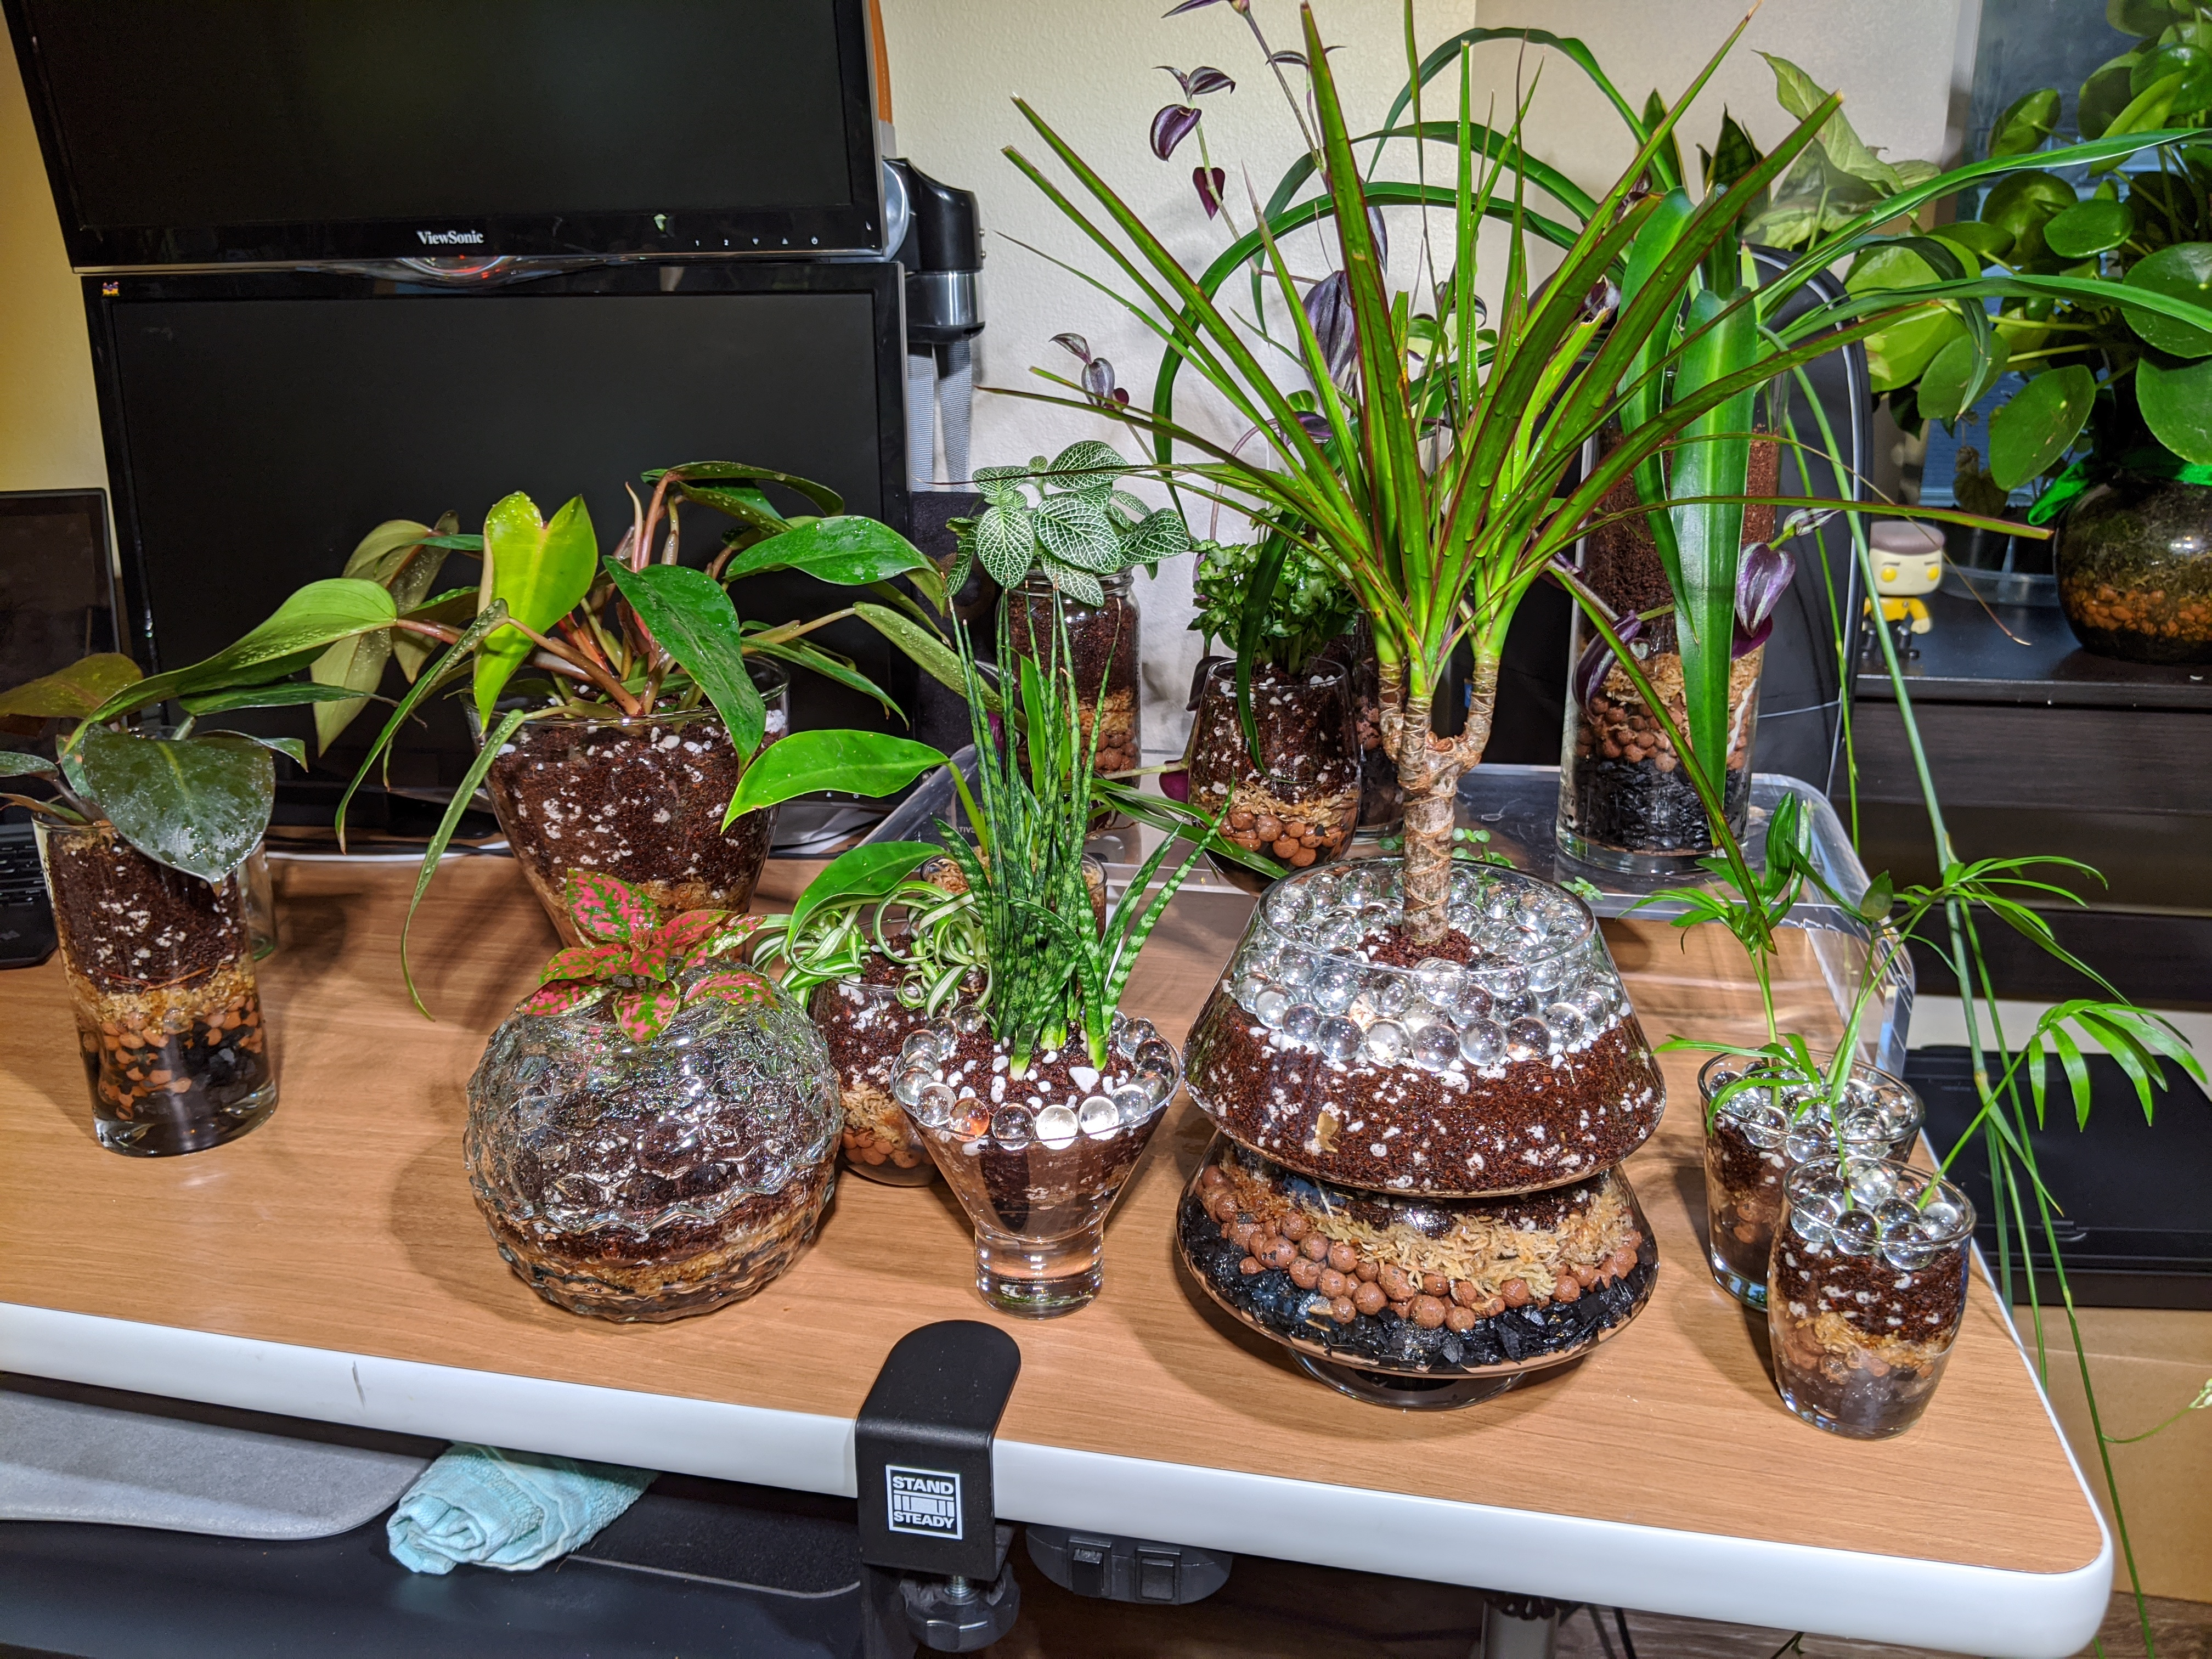 Collection of plants in glass pots